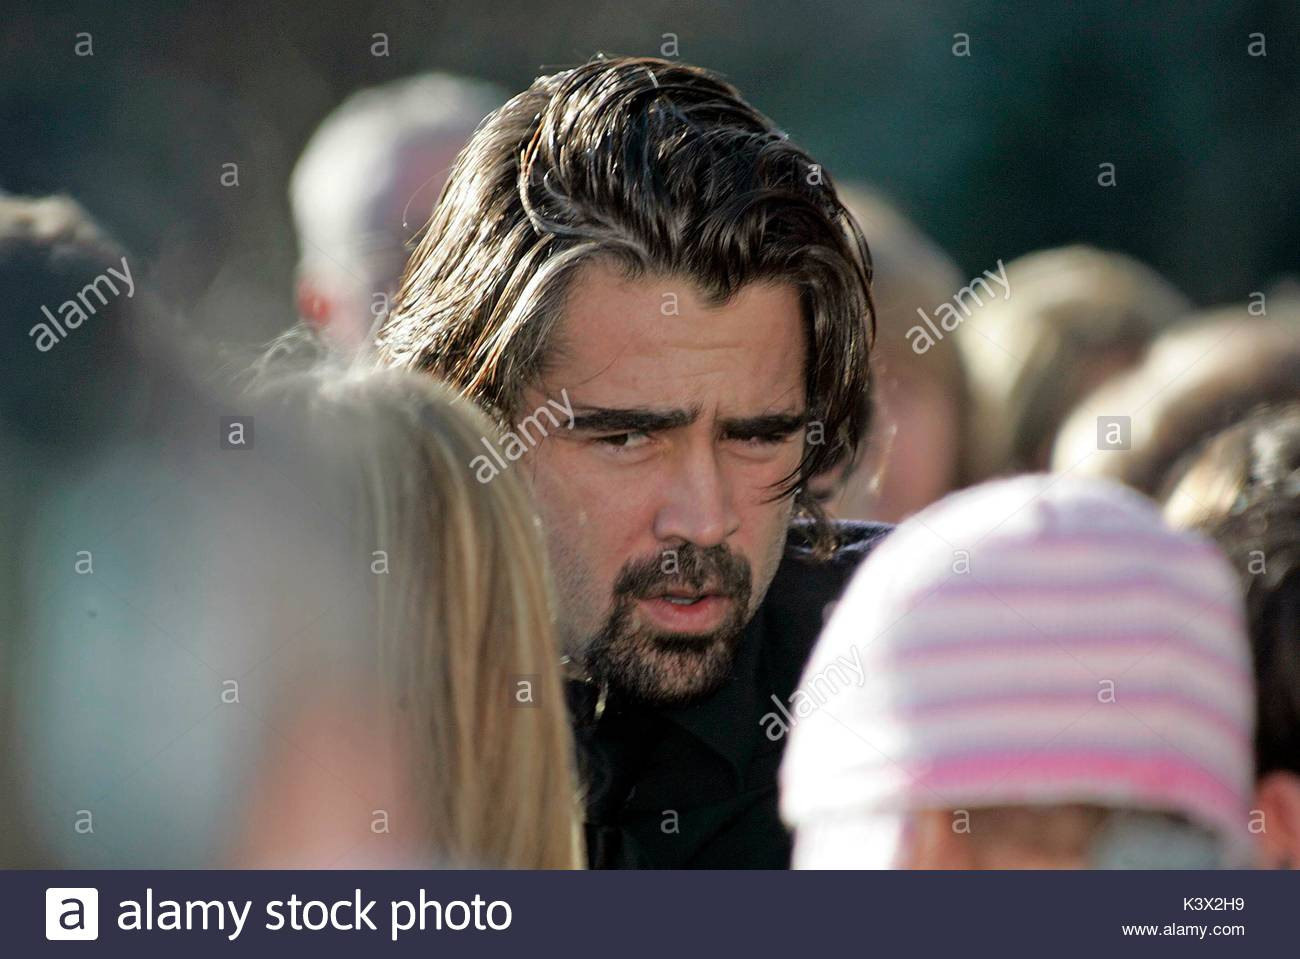 Colin Farrell at the funeral of Geraldine O'Keefe, mother of actor Jonathon Rhys Myers of 'The Tudors' - Stock Image